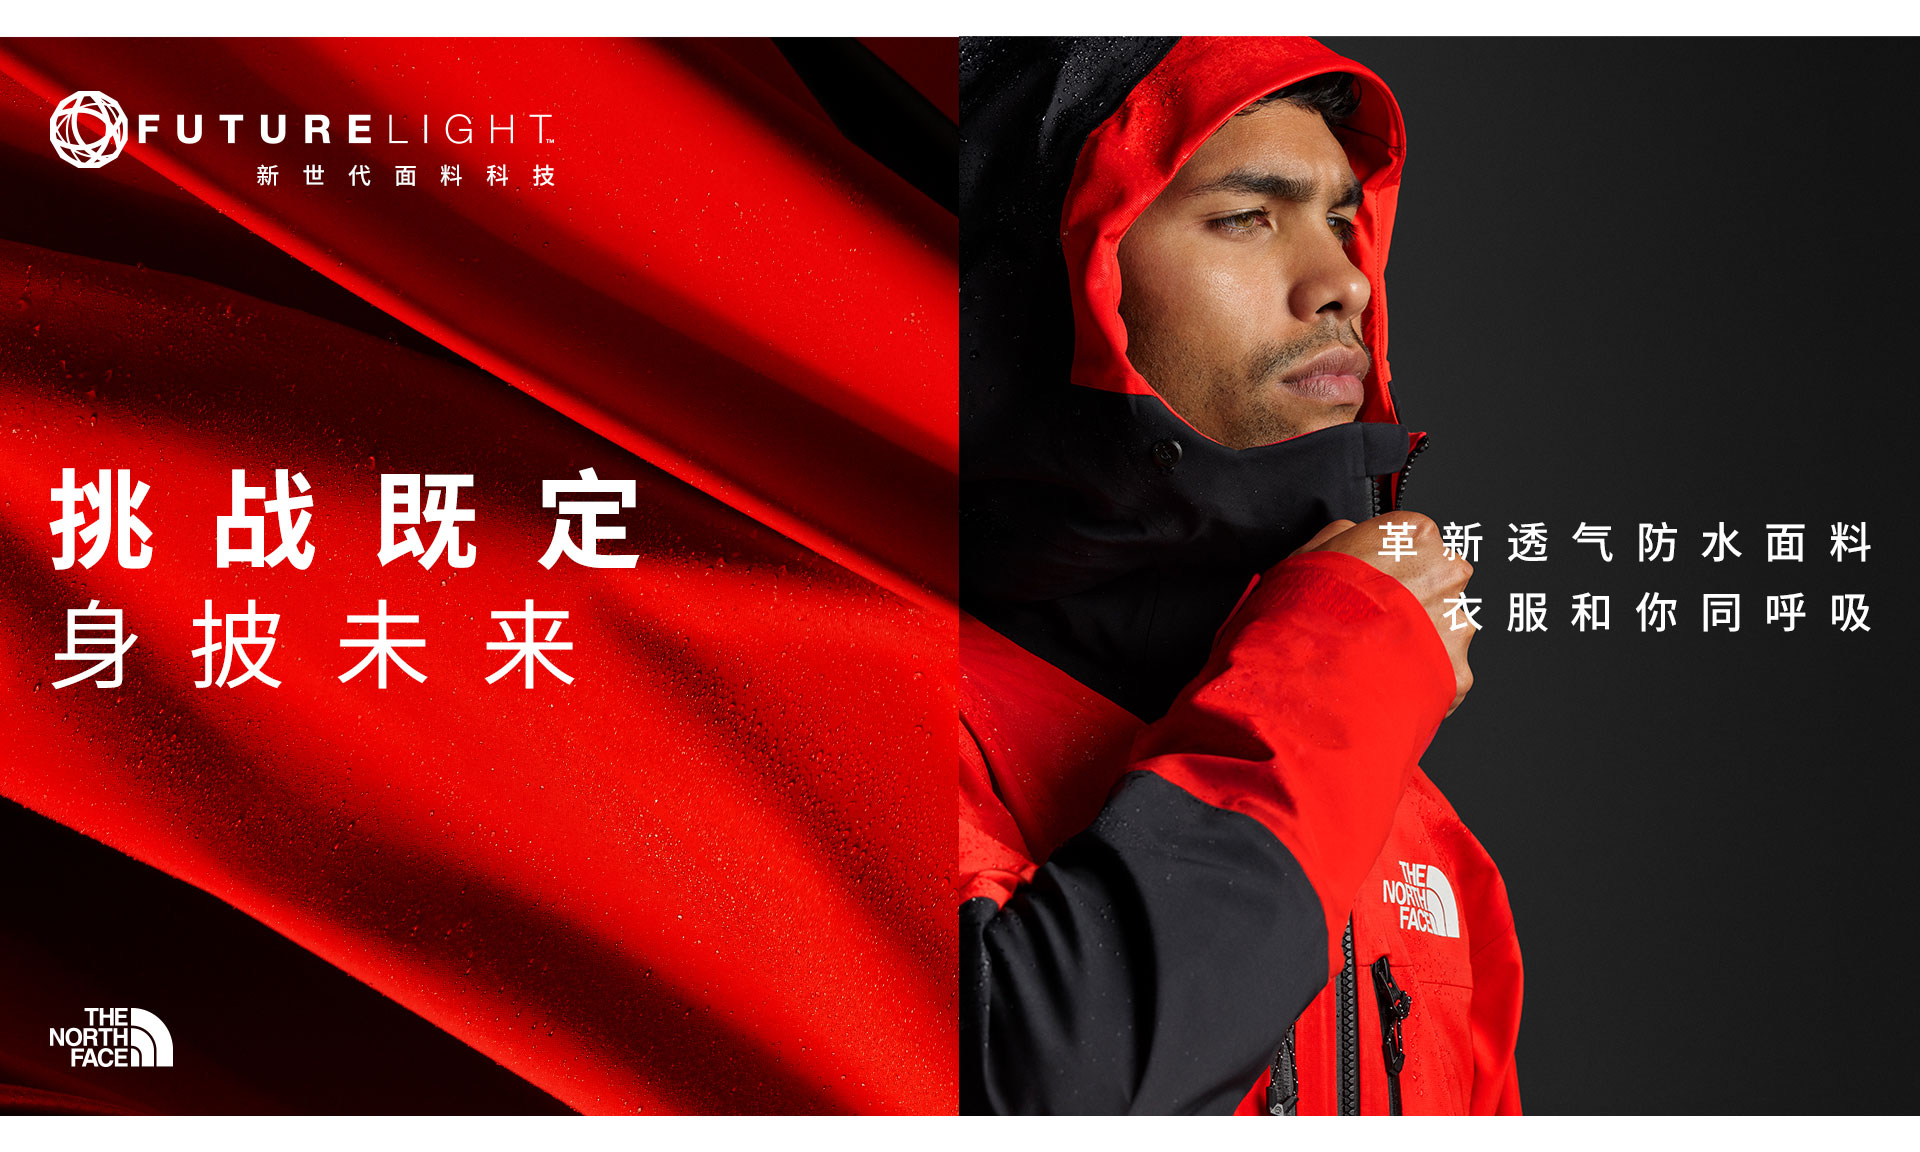 挑战既定,身披未来,THE NORTH FACE 推出 FUTURELIGHT™ 系列